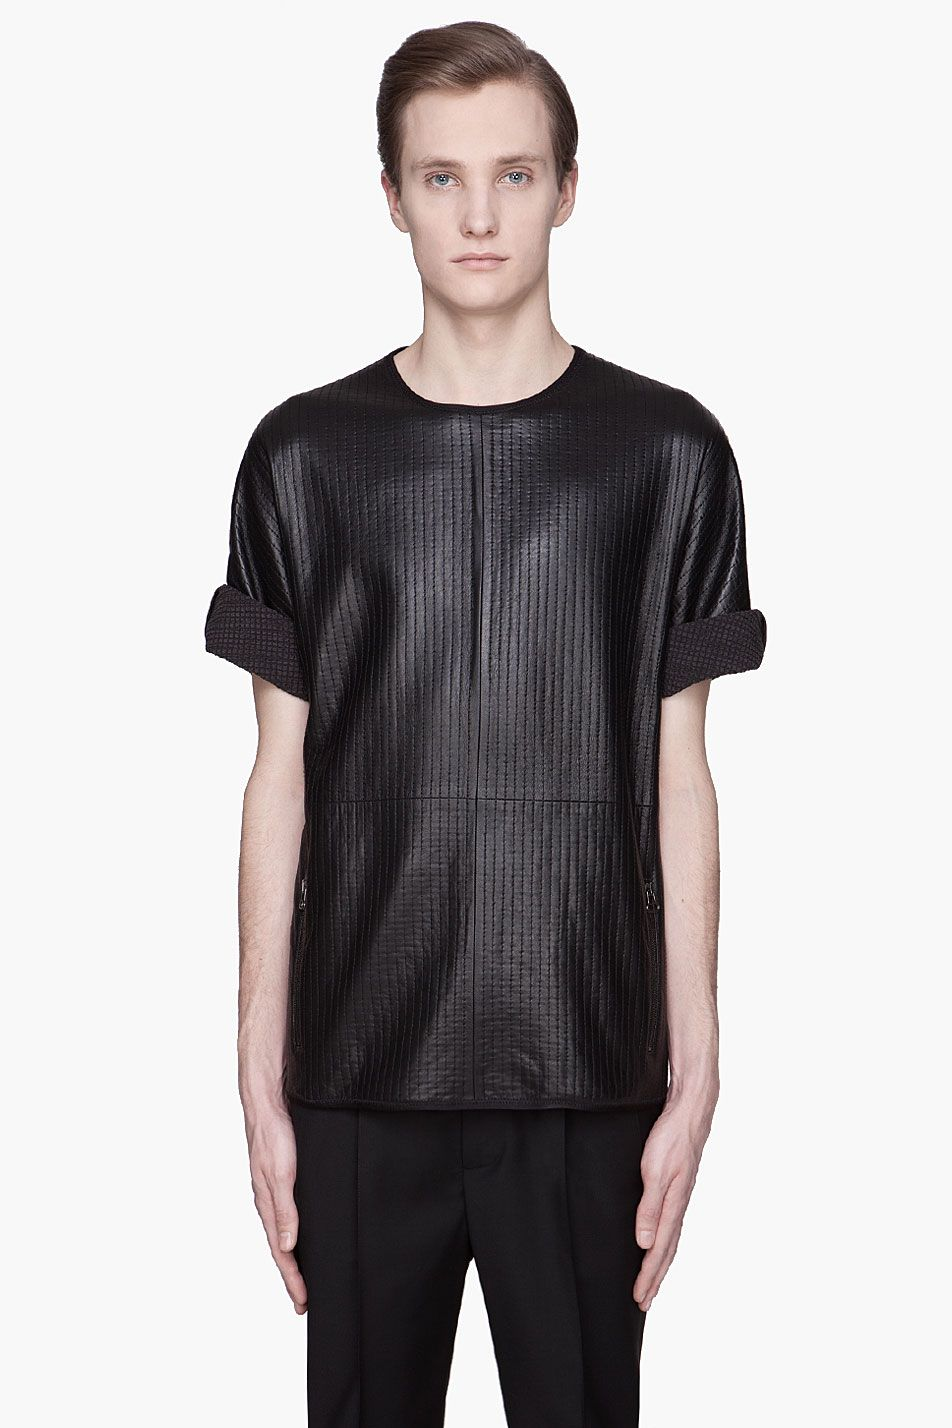 Black quilted t shirt - Black Lanvin Black Quilted Lambskin T Shirt